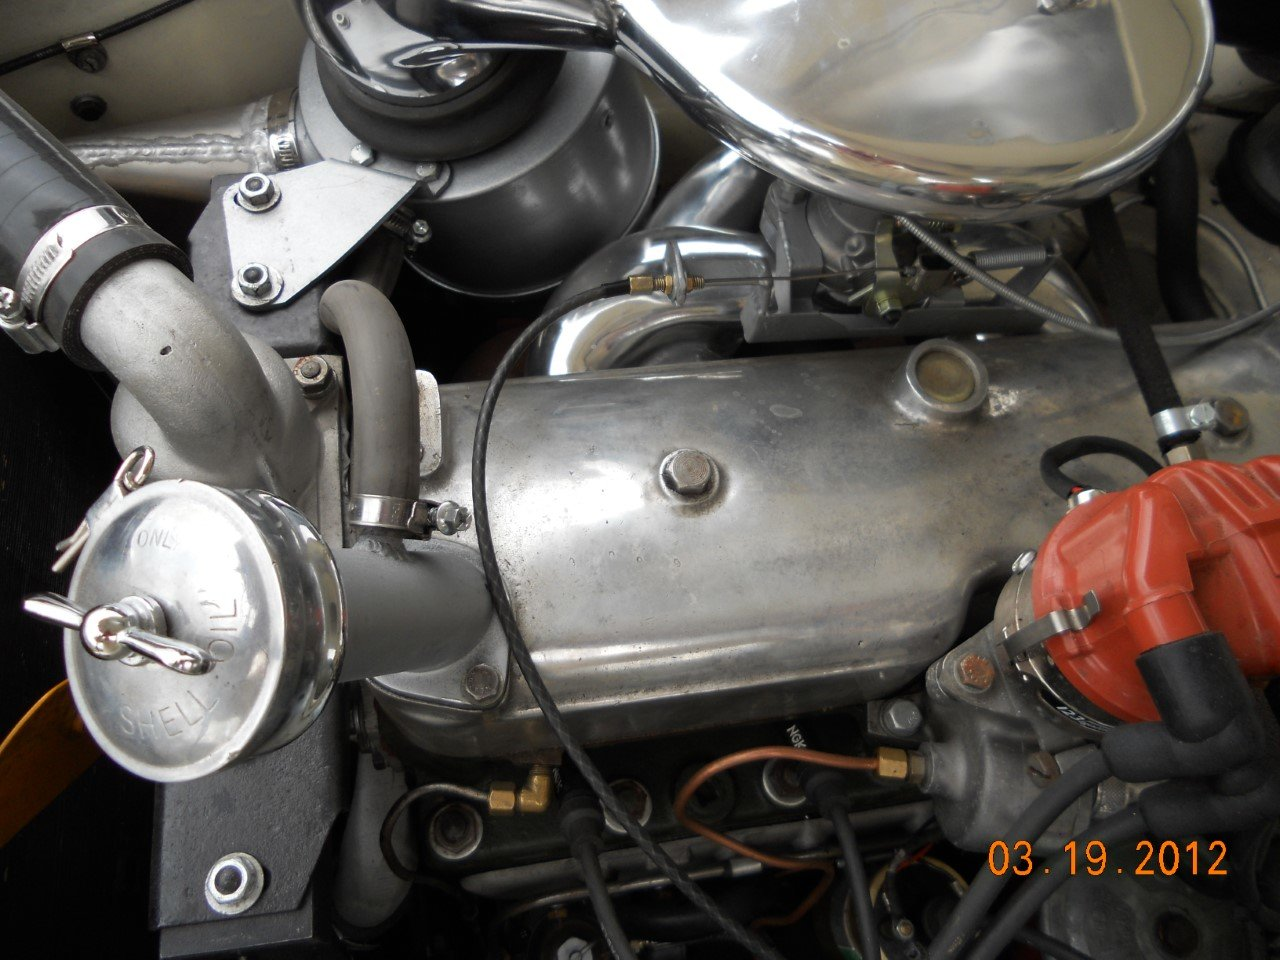 1954 Alpine s model  Very rare perfect  For Sale (picture 3 of 6)